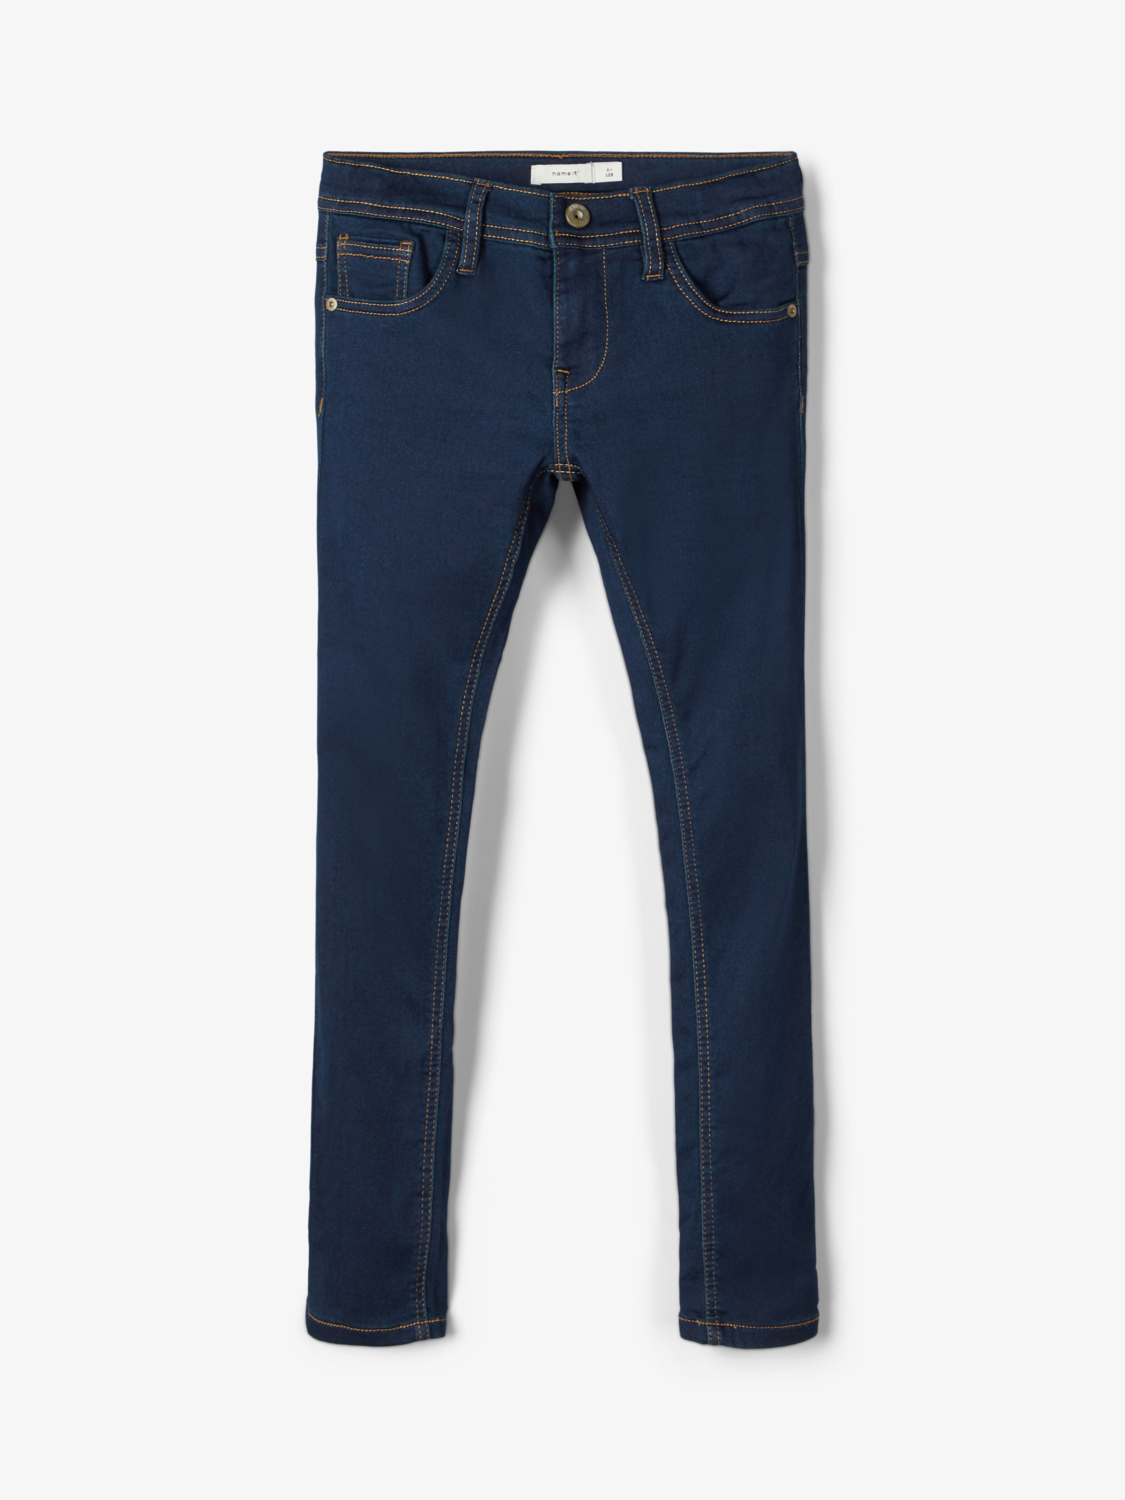 JEANS NKM ROBIN DNMTHAYER 3157 SWEAT PANT